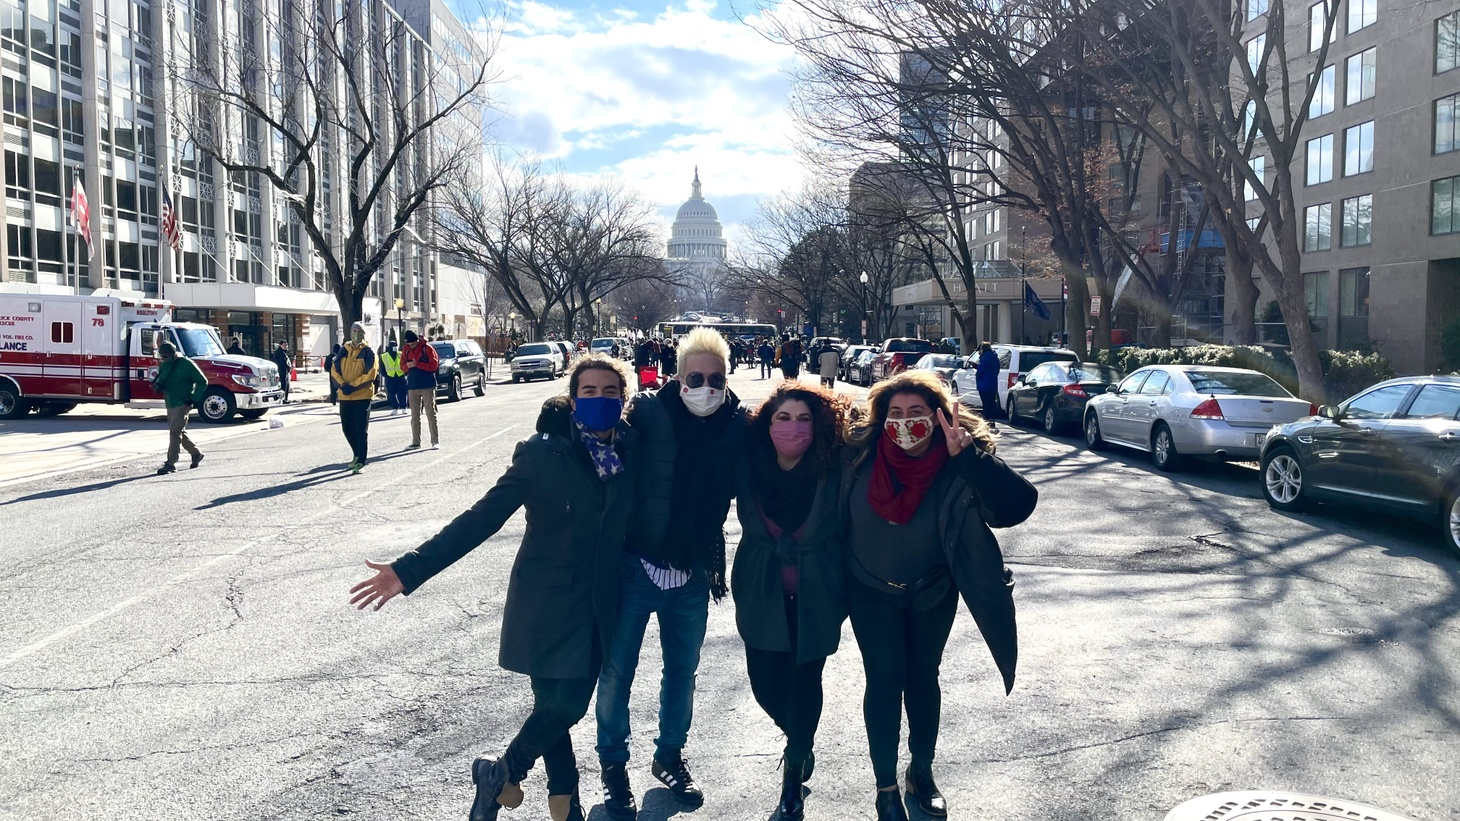 Edwin Rivera and his friends in Washington D.C. for the presidential inauguration.